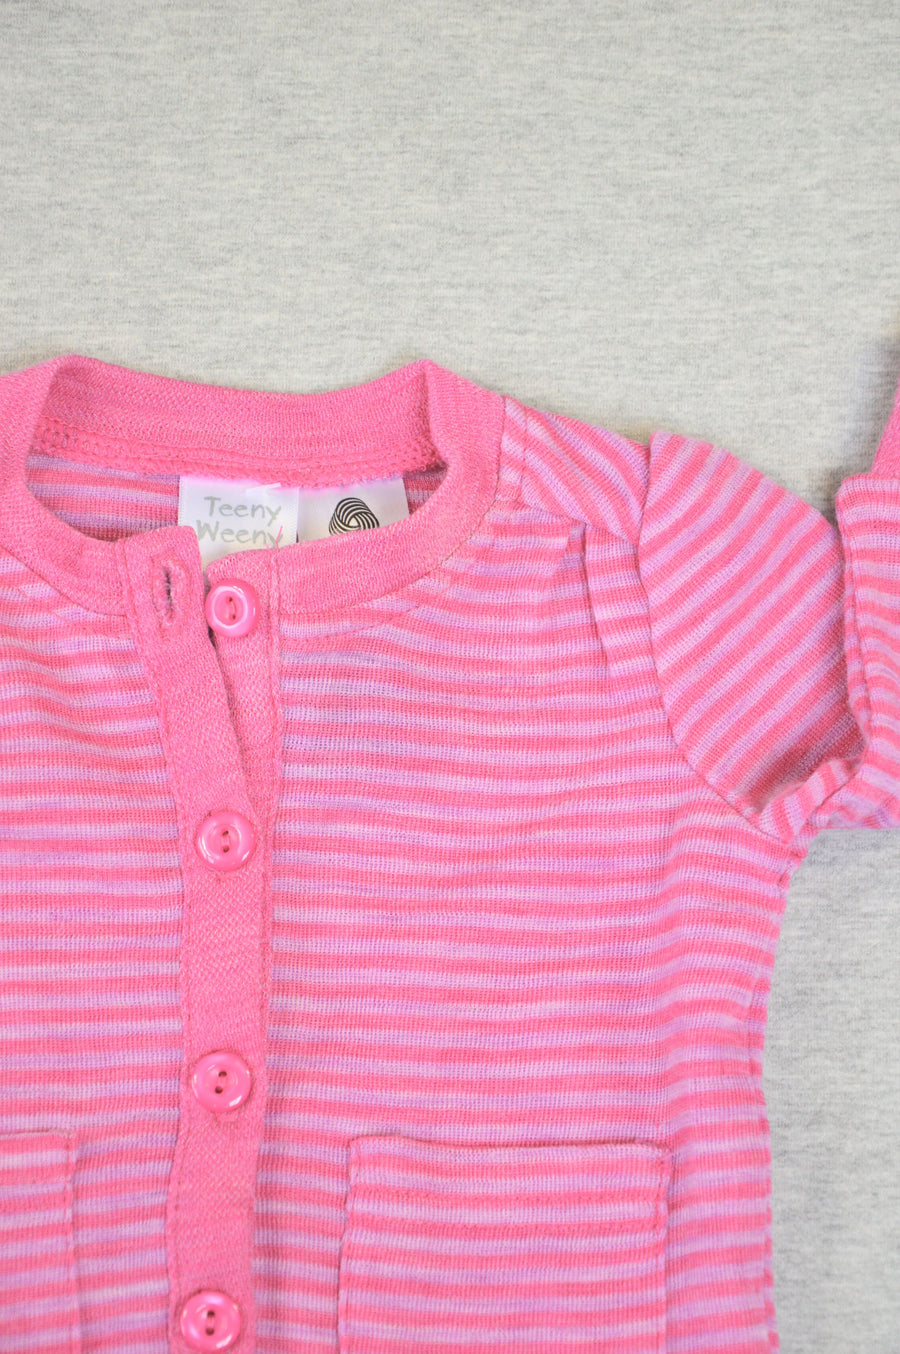 Teeny Weeny - nearly new - pink striped merino cardigan, size 0-3m